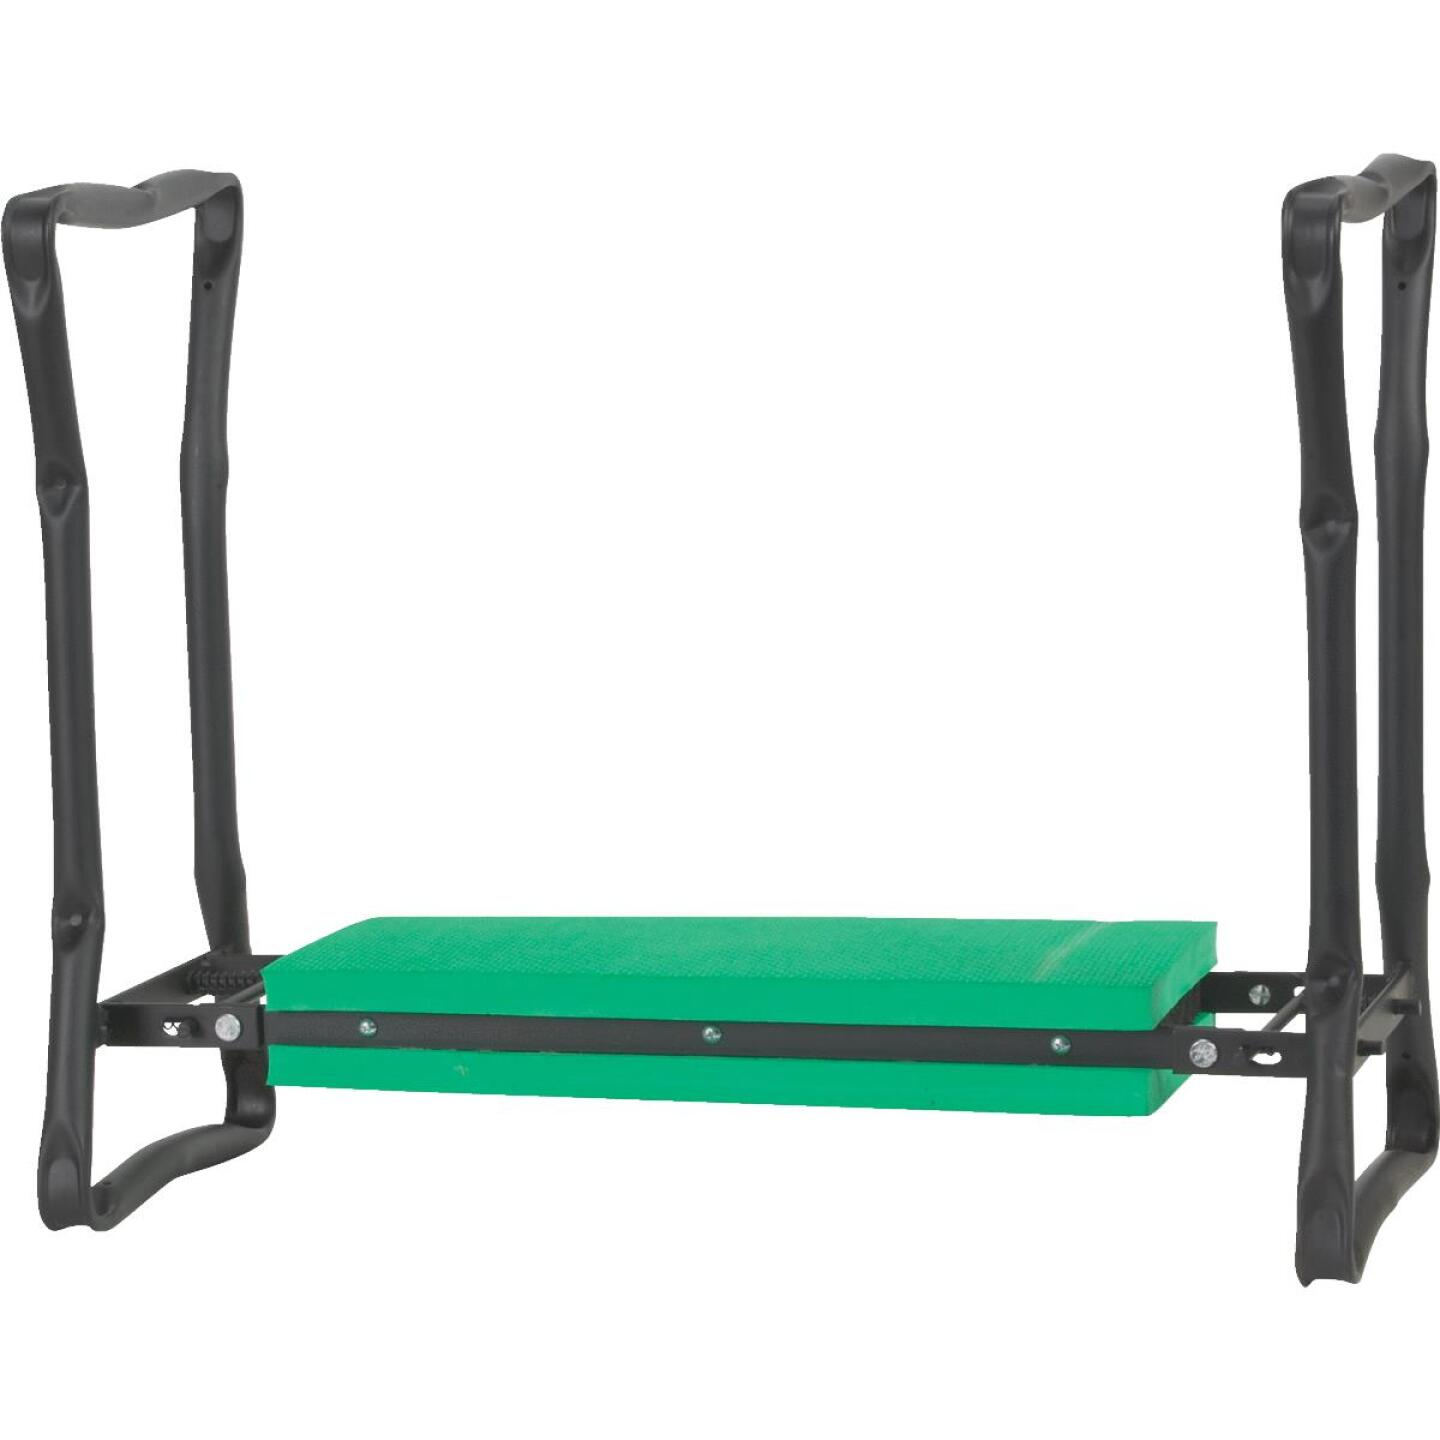 Best Garden Green Foam Pad w/Black Steel Frame Garden Kneeler Bench Image 2